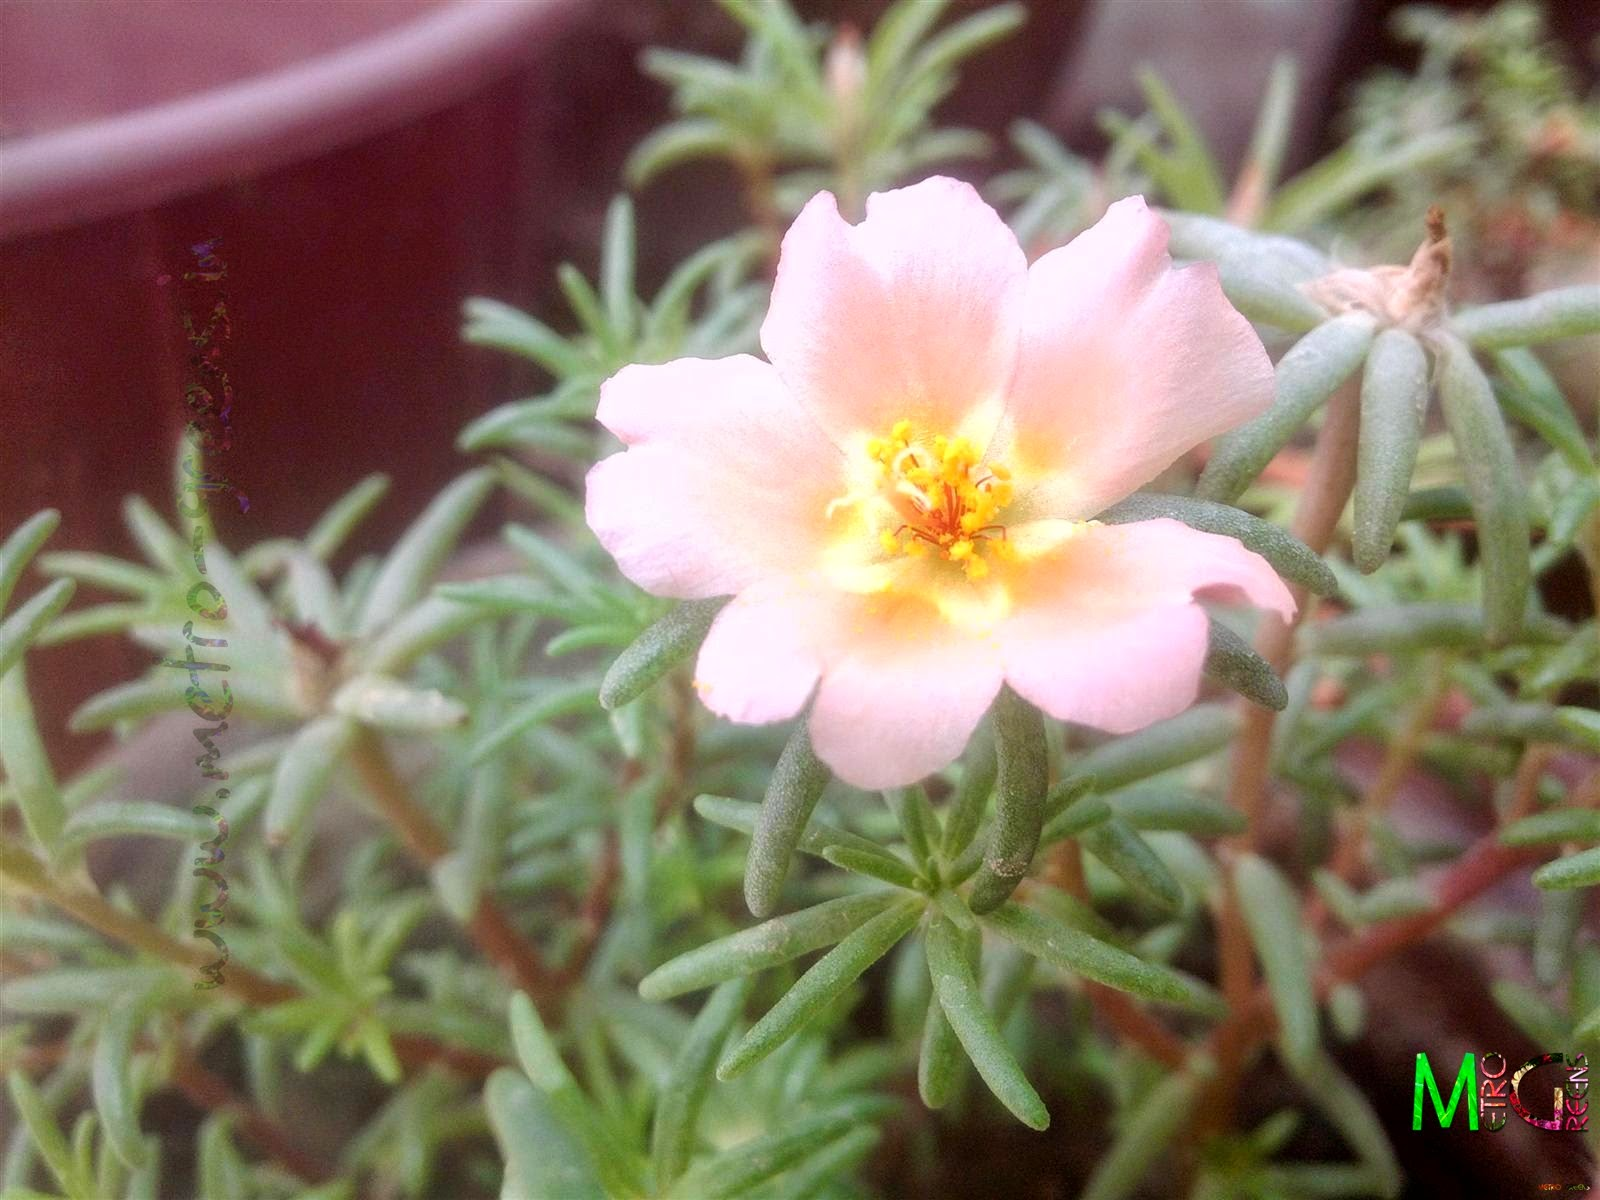 Metro Greens: A peach coloured portulaca bloom.